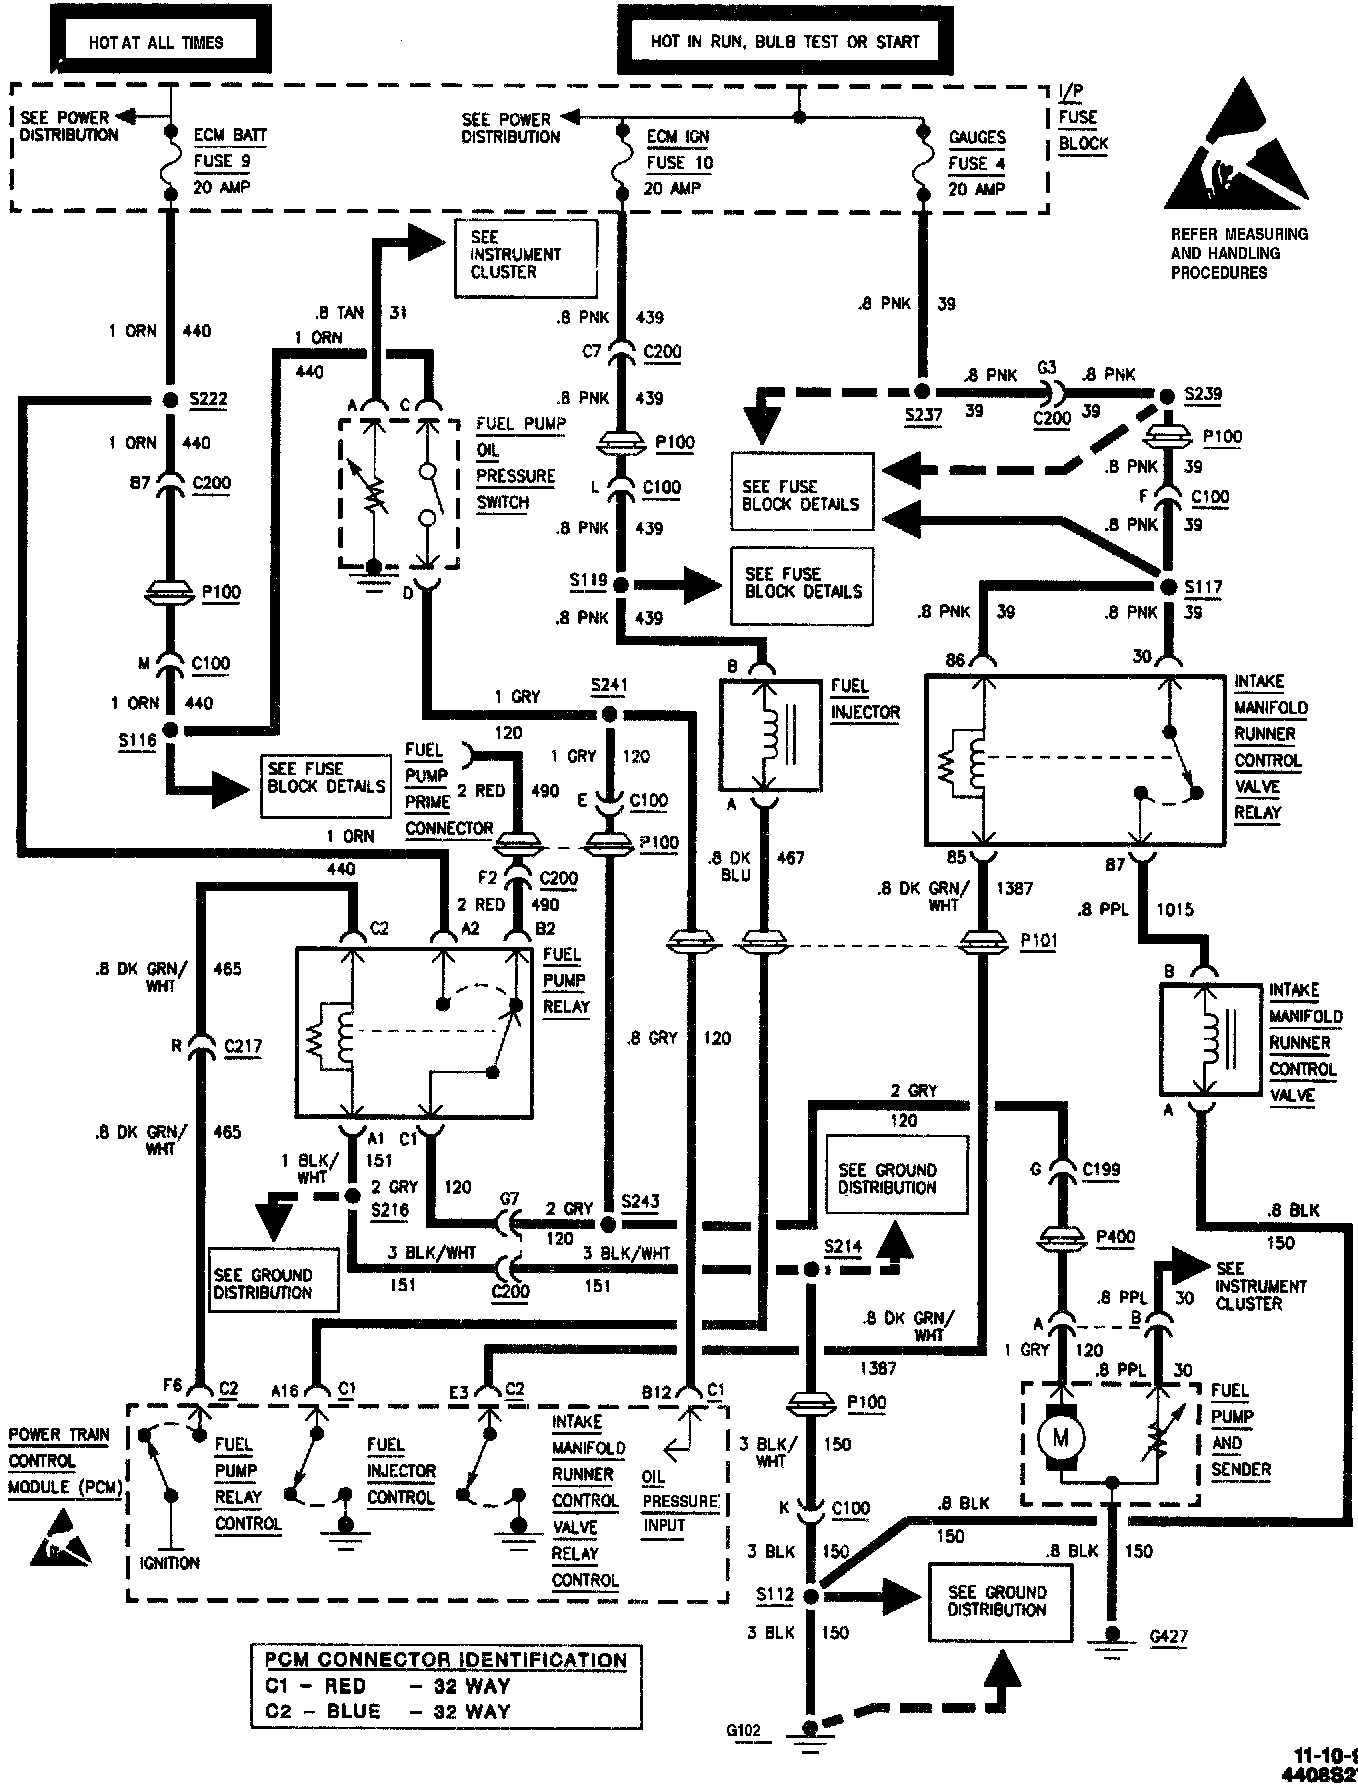 1999 isuzu npr fuse diagram best wiring library Peterbilt 384 Wiring Diagram 2005 chevy trailblazer fuel pump wiring best site wiring 1999 isuzu npr wiring diagram 1998